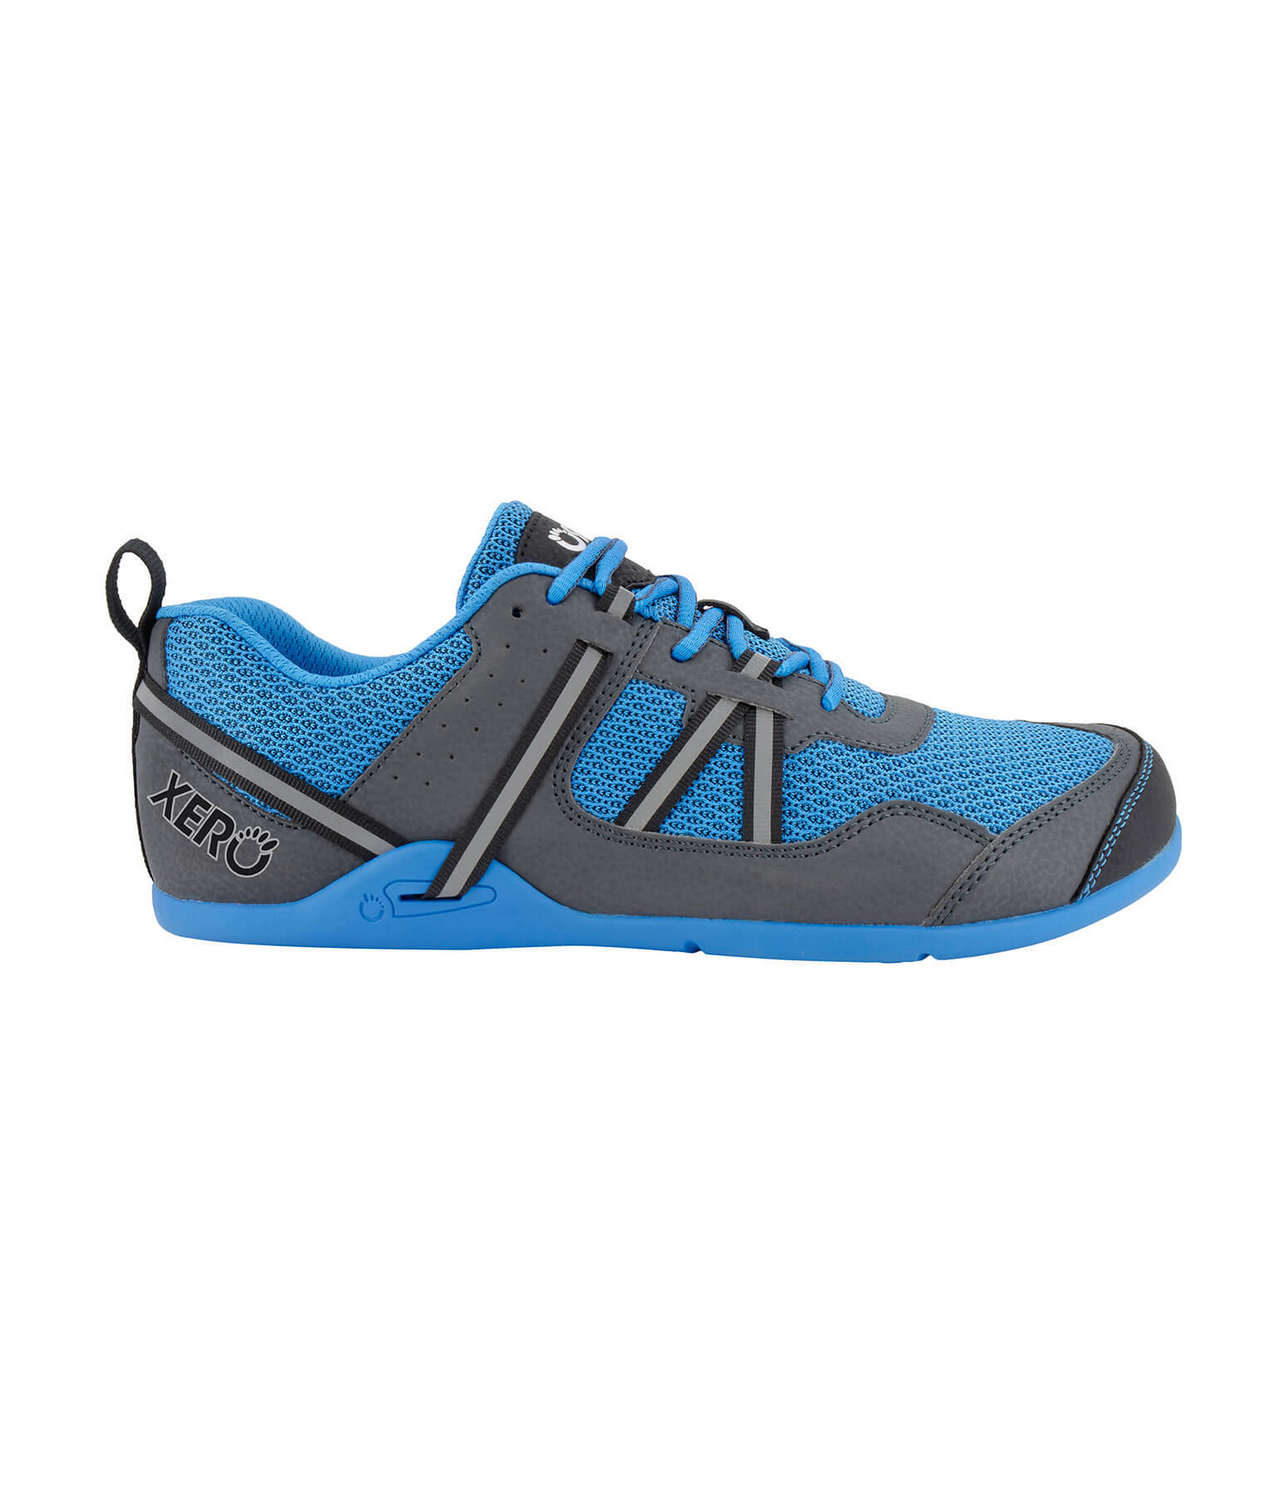 Xero Shoes Prio Running and Fitness